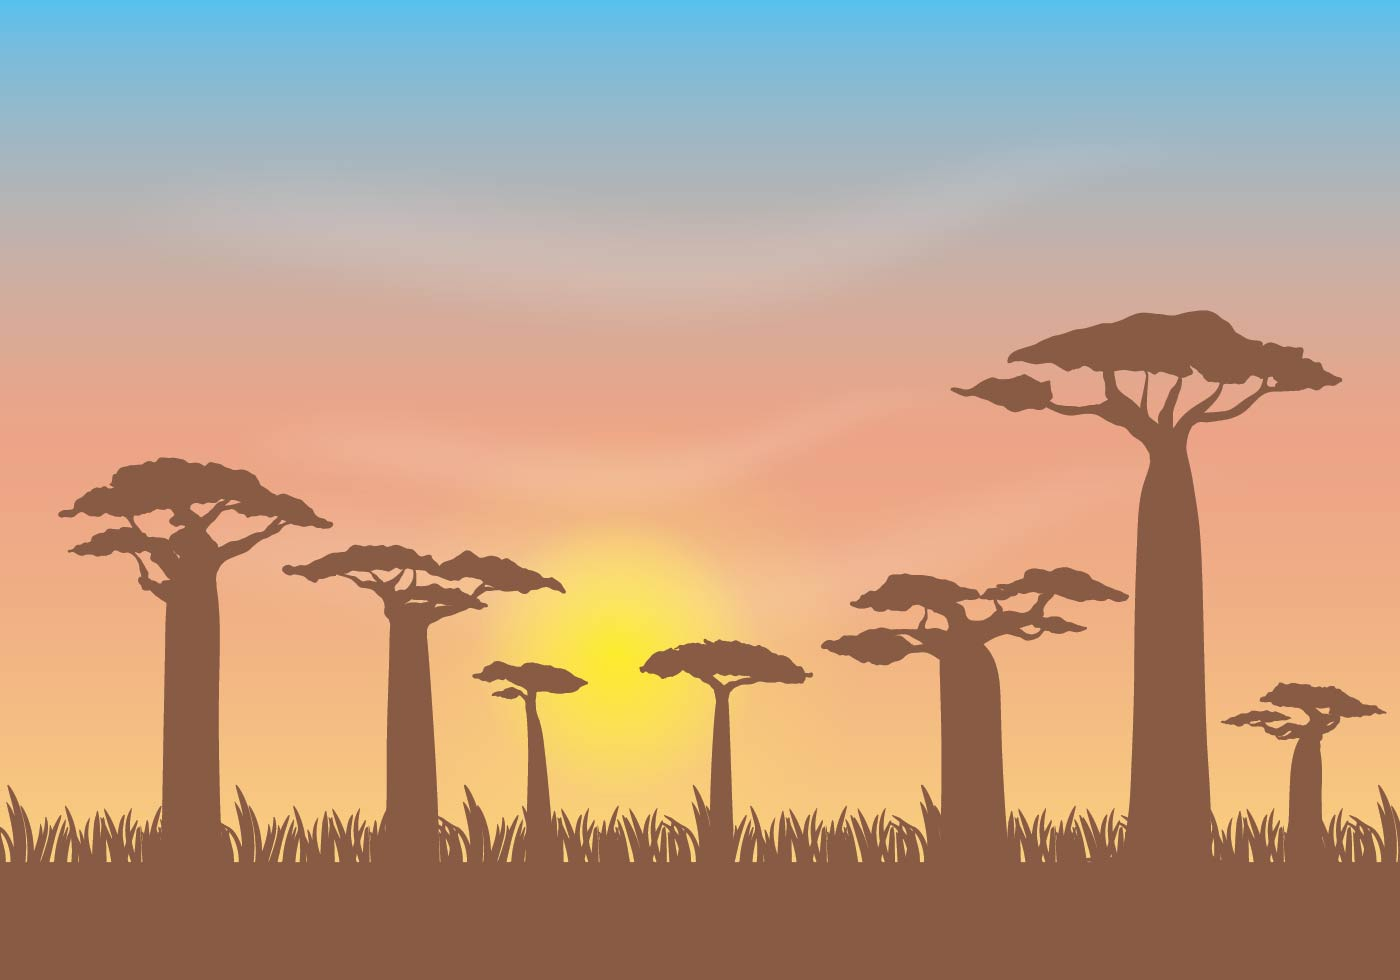 Free Baobab Vector Illustration Download Free Vectors